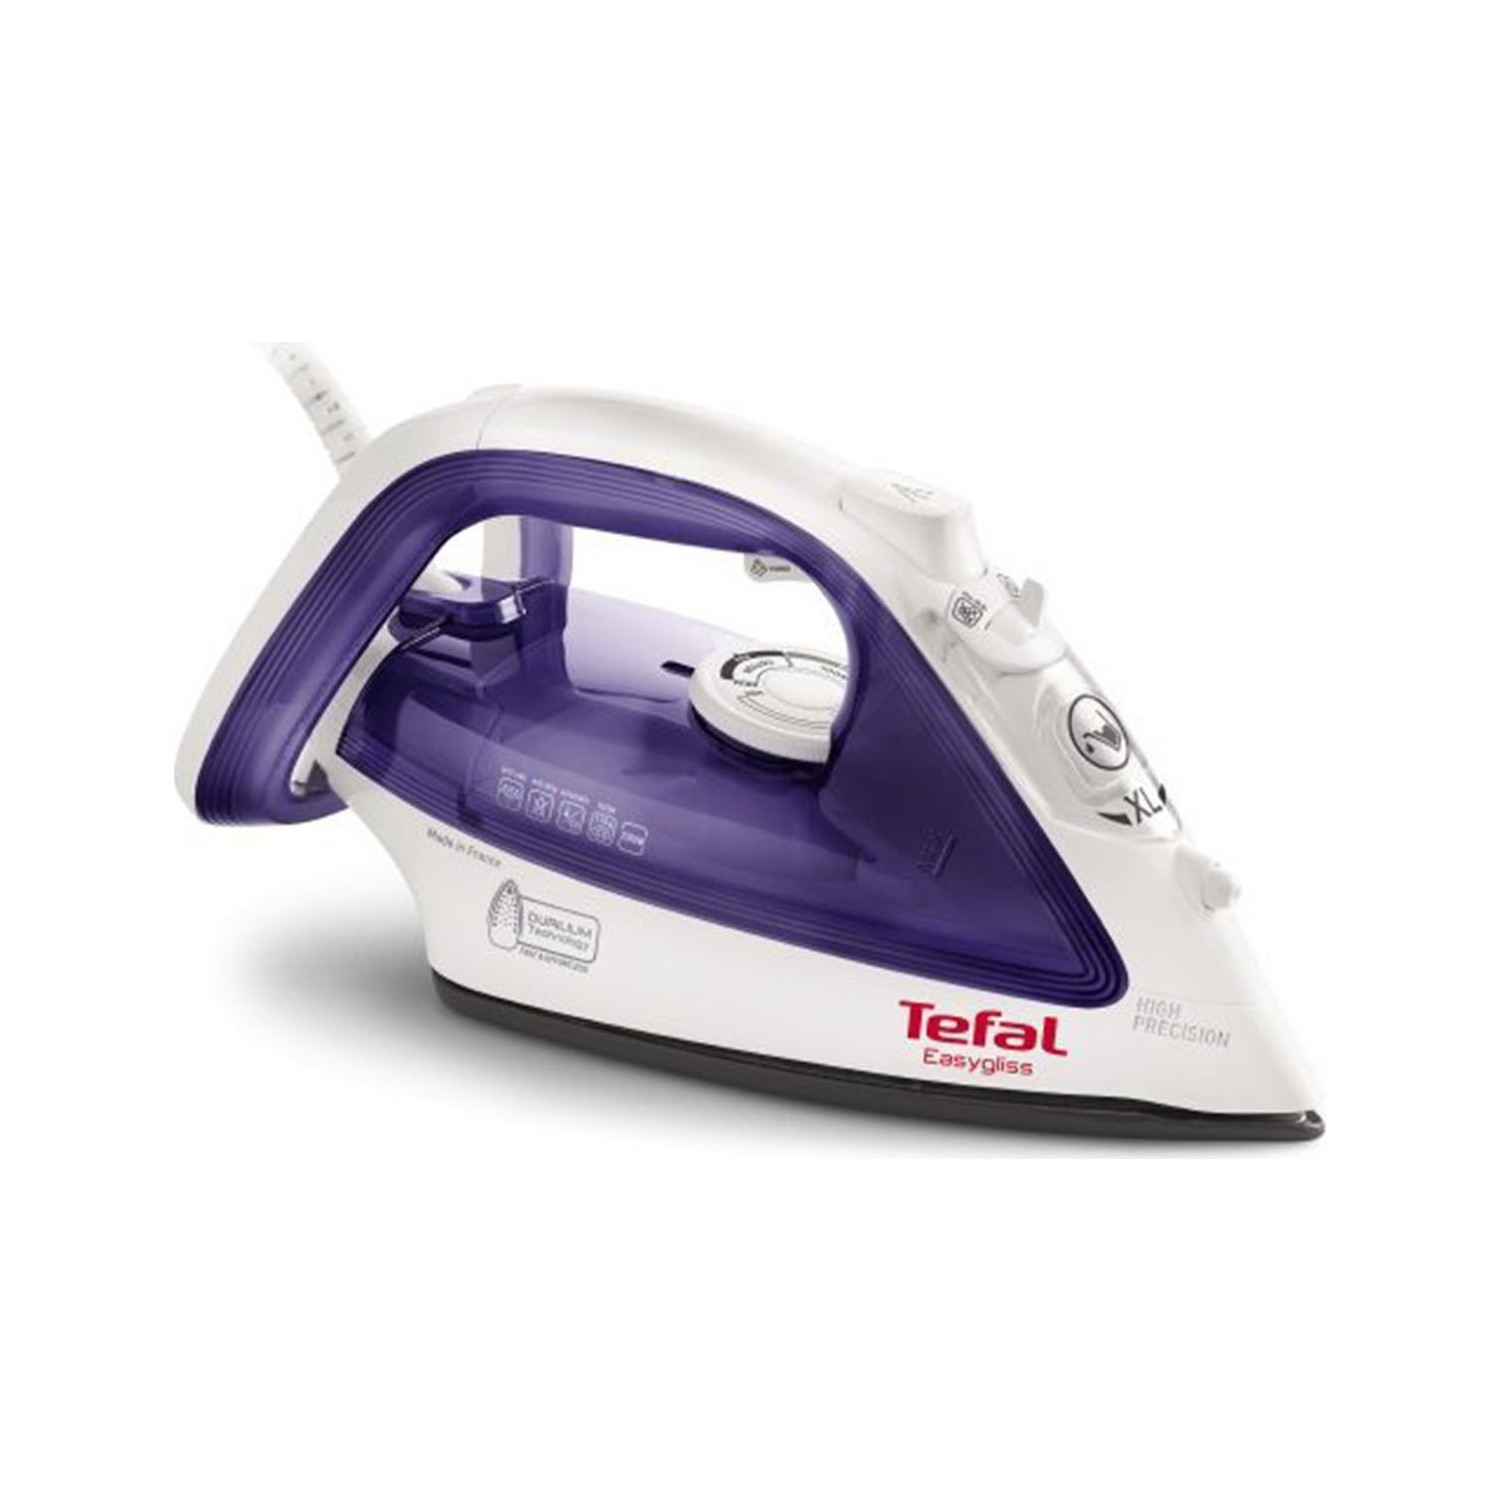 Tefal Steam Iron 2300W FV3915 Purple/White